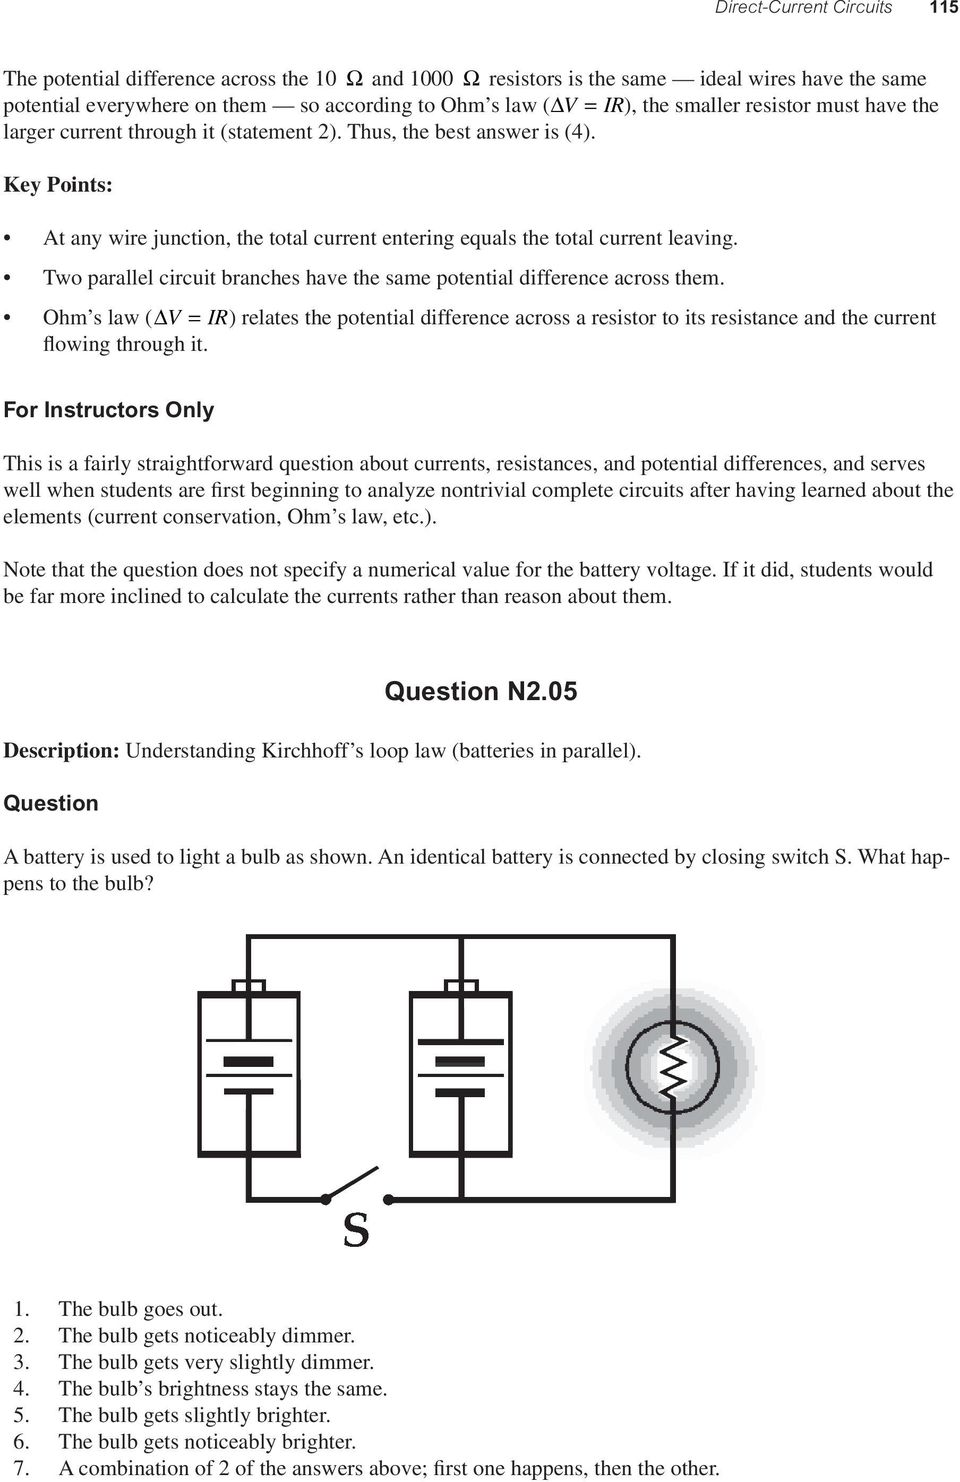 Direct Current Circuits Pdf Parallel Circuit Bulbs Are In Two Branches Have The Same Potential Difference Across Them Ohm S Law